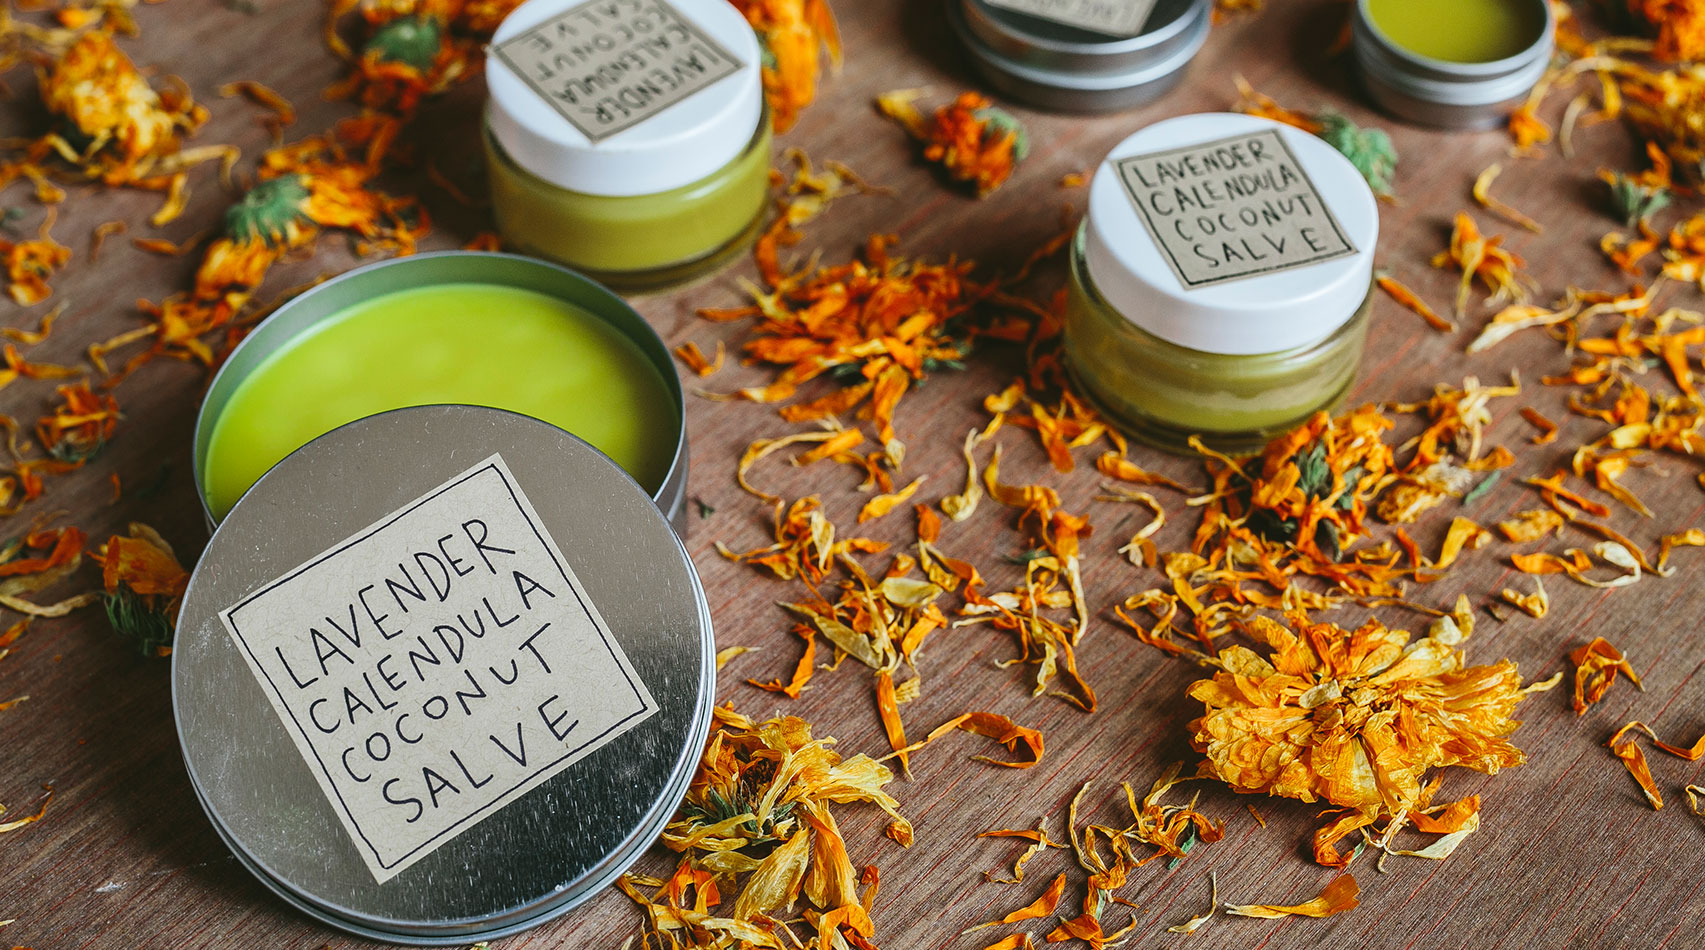 Learn how to make this homemade lavender calendula coconut salve recipe via Medicinal Traditionals! It nourishes and soothes dry skin and can also be used as a healing lip balm!